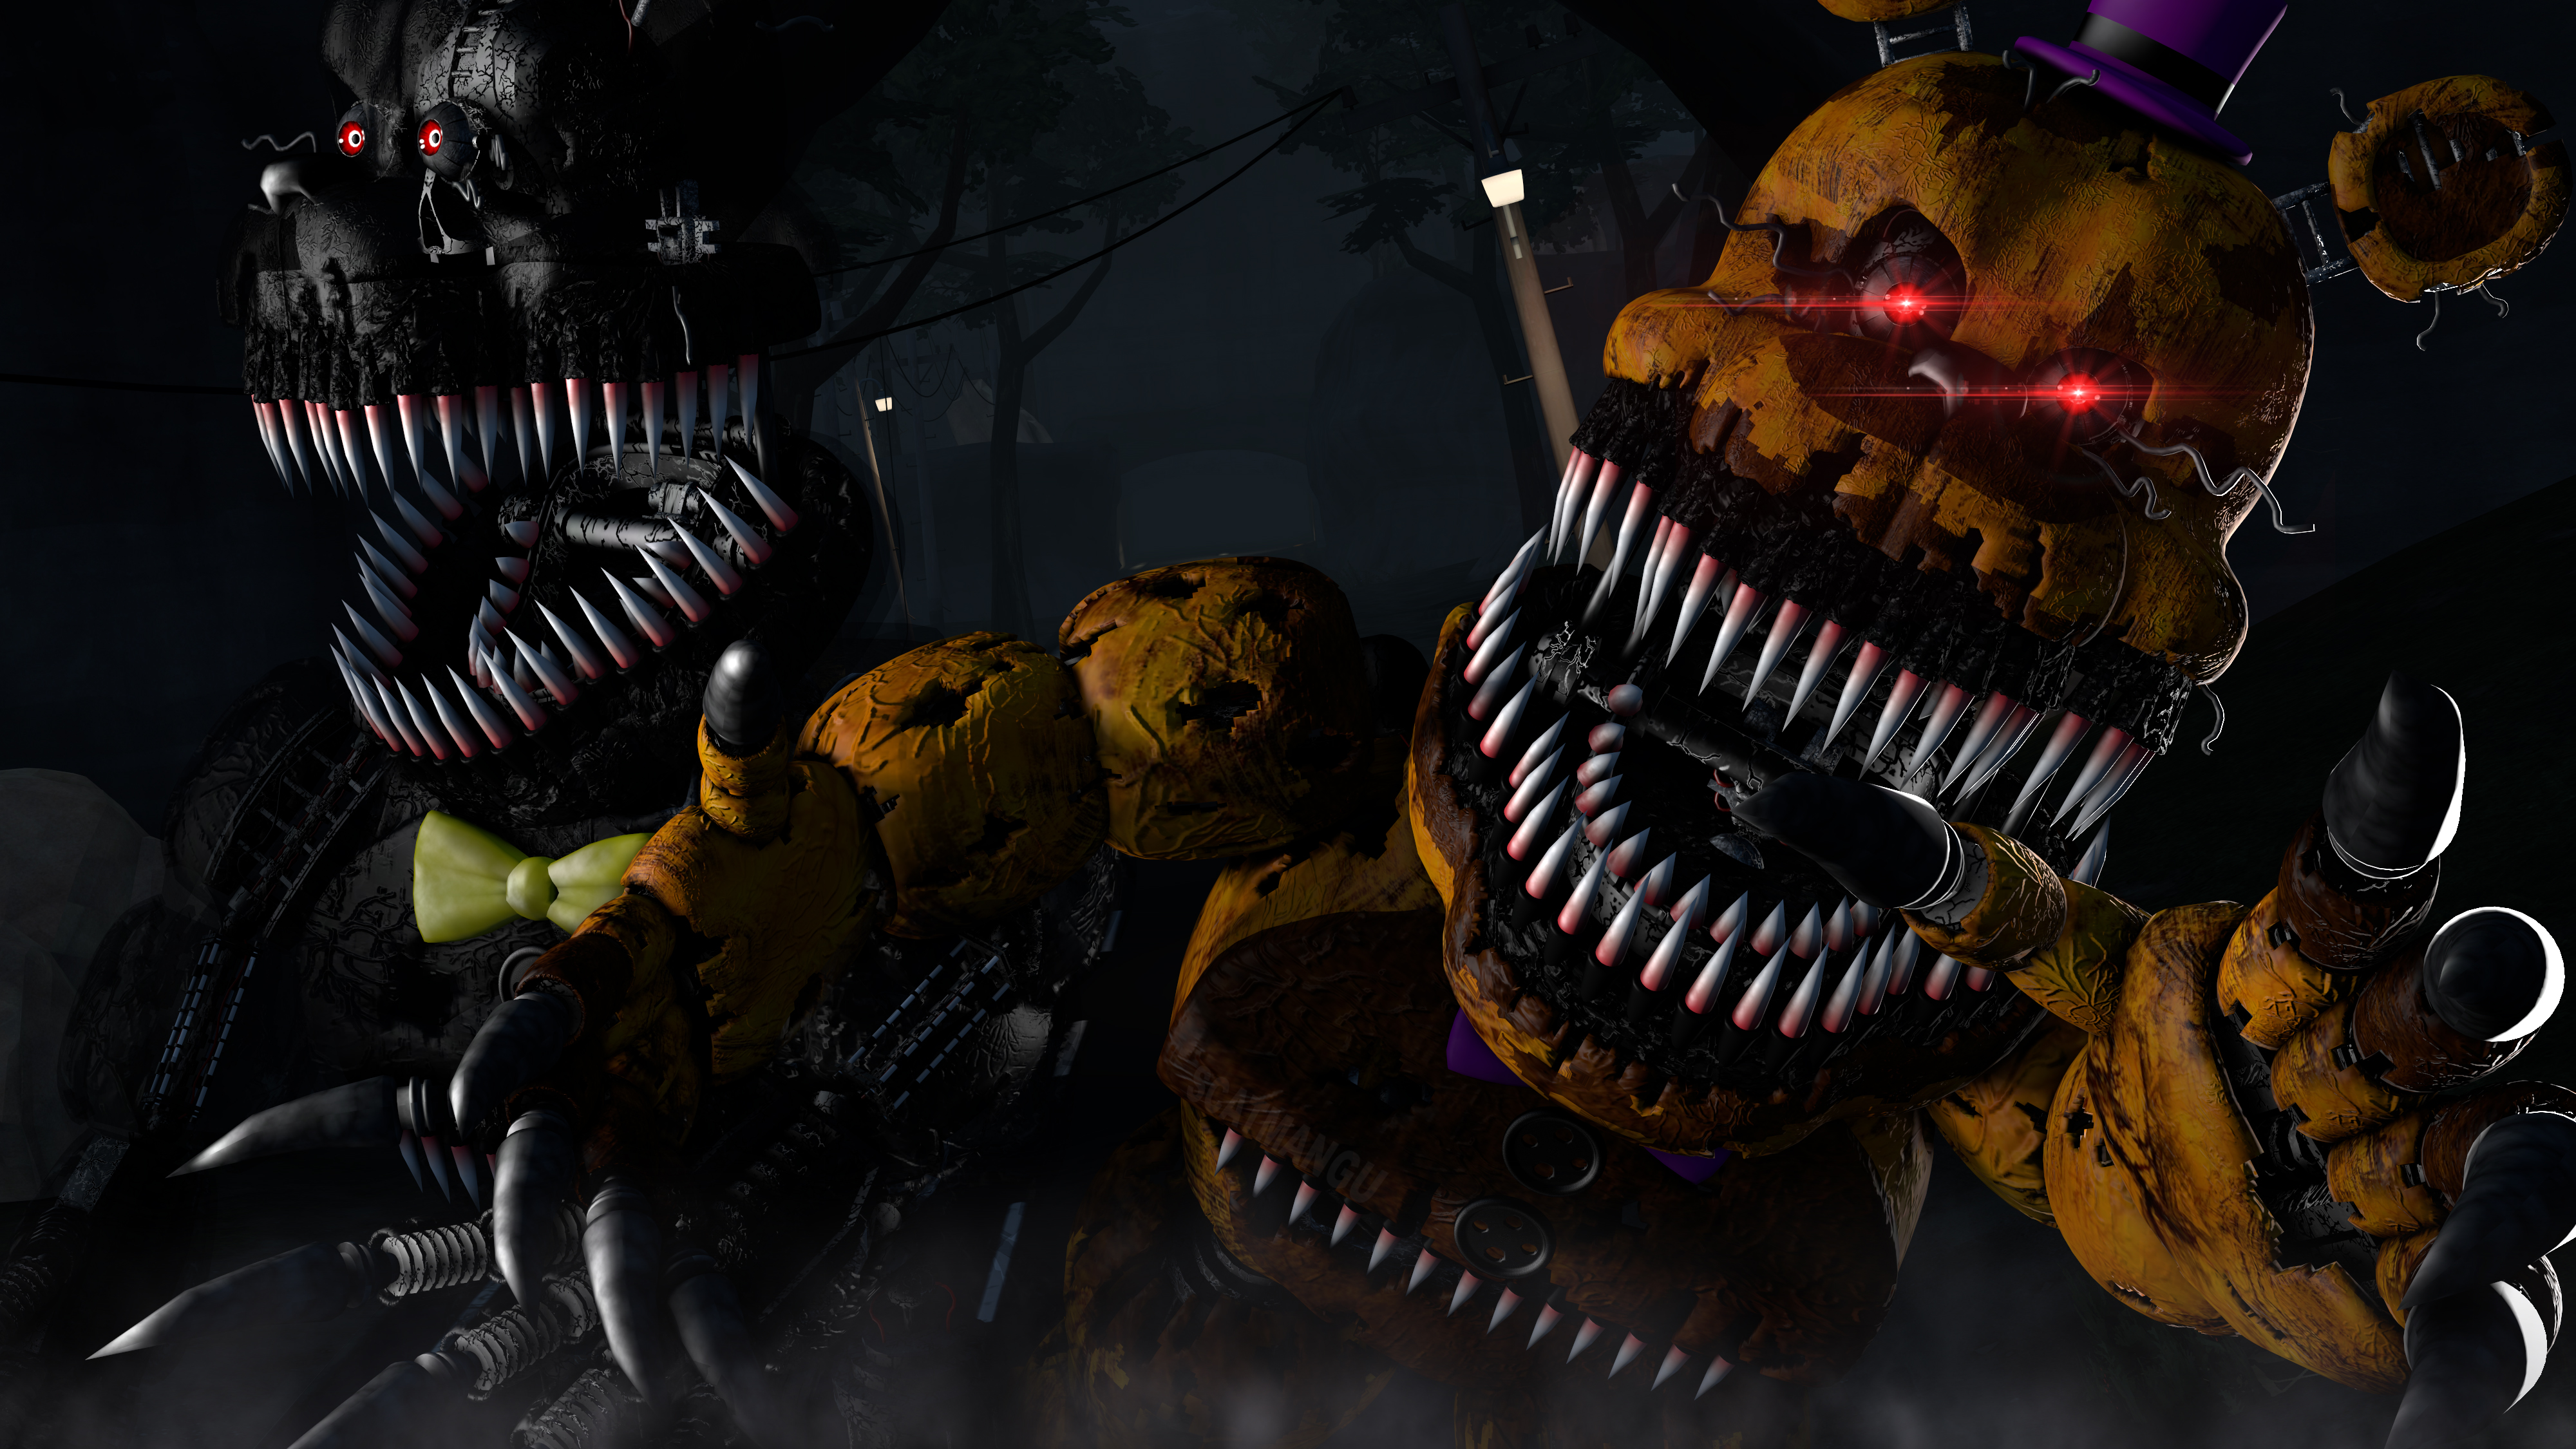 Five Nights At Freddy S 4 4k Ultra Hd Wallpaper Background Image